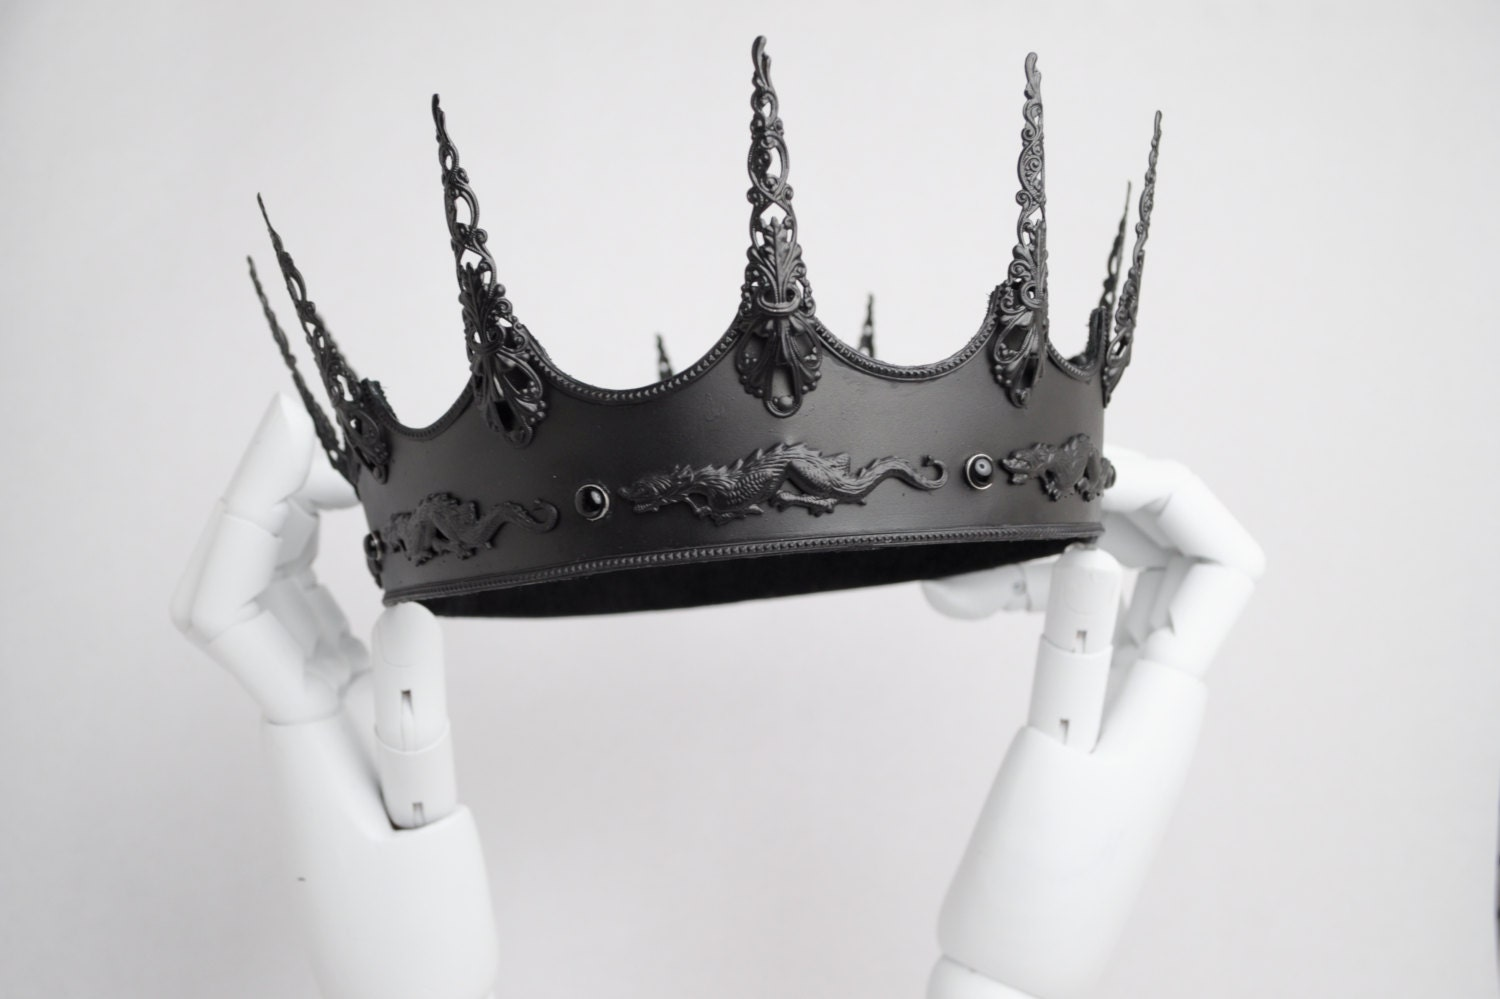 Evil crown drawing - photo#22